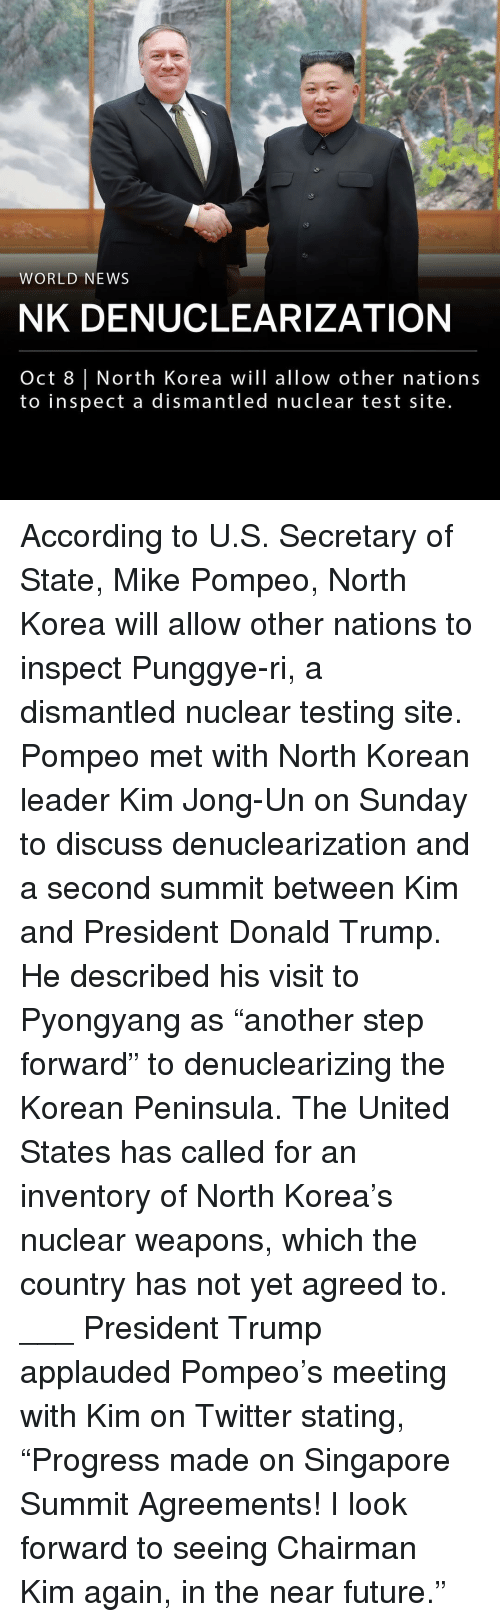 "Donald Trump, Future, and Kim Jong-Un: WORLD NEWS  NK DENUCLEARIZATION  Oct 8 | North Korea will allow other nations  to inspect a dismantled nuclear test site. According to U.S. Secretary of State, Mike Pompeo, North Korea will allow other nations to inspect Punggye-ri, a dismantled nuclear testing site. Pompeo met with North Korean leader Kim Jong-Un on Sunday to discuss denuclearization and a second summit between Kim and President Donald Trump. He described his visit to Pyongyang as ""another step forward"" to denuclearizing the Korean Peninsula. The United States has called for an inventory of North Korea's nuclear weapons, which the country has not yet agreed to. ___ President Trump applauded Pompeo's meeting with Kim on Twitter stating, ""Progress made on Singapore Summit Agreements! I look forward to seeing Chairman Kim again, in the near future."""